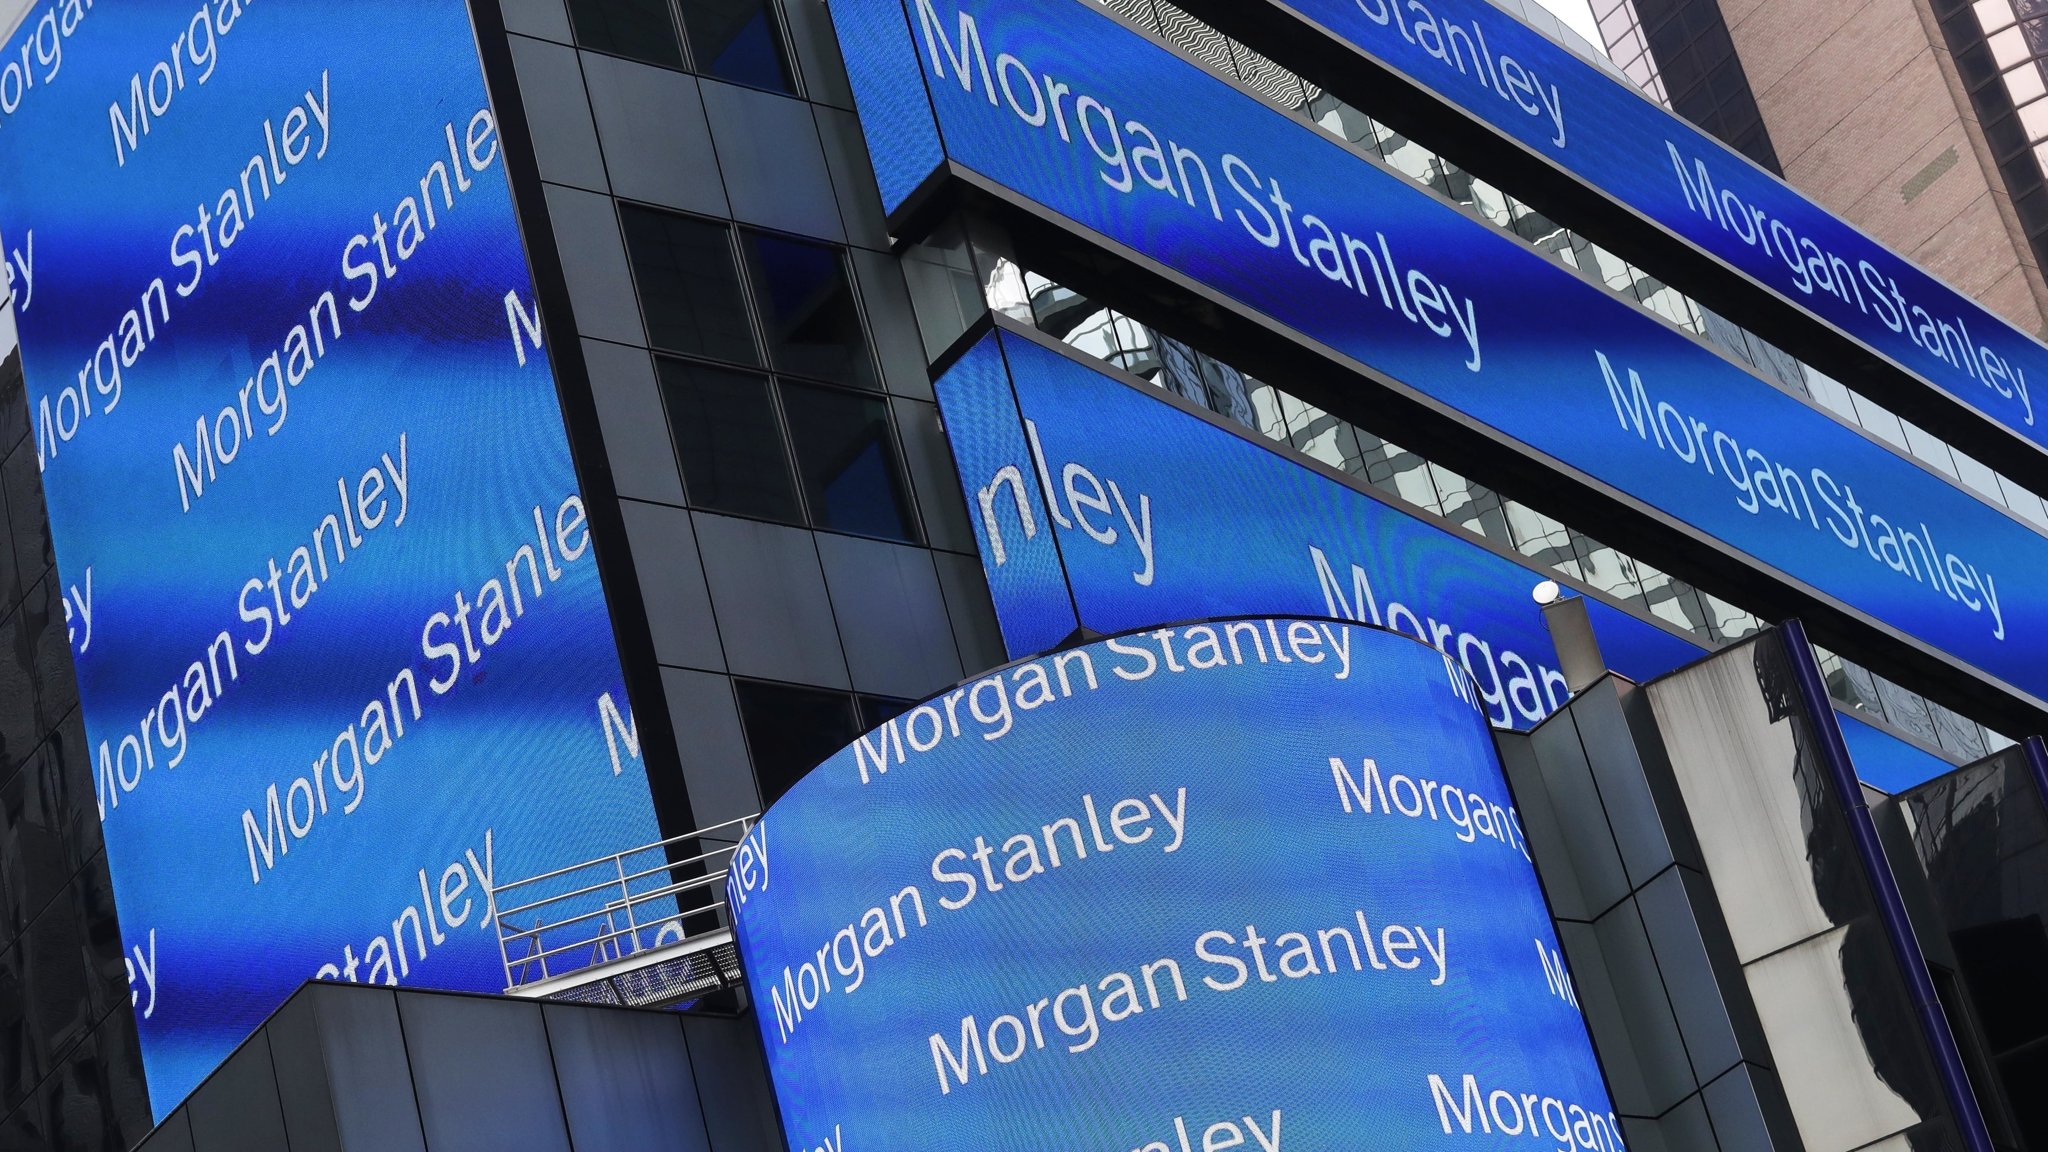 Morgan Stanley outshines investment banking rivals